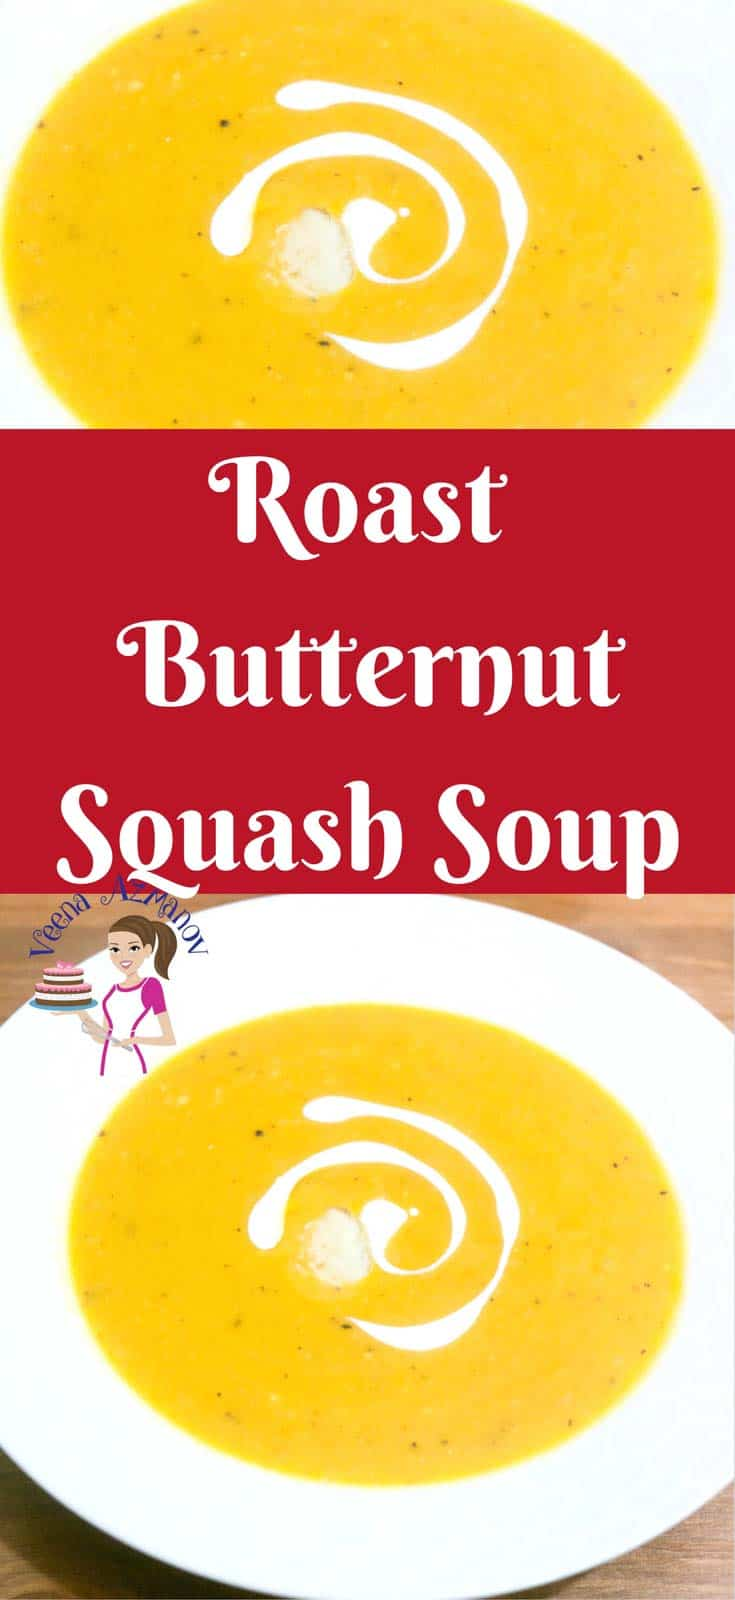 Roasting butternut squash adds a ton of favor making it more sweet and flavorful. This roasted butternut squash soup is perfect cooler temperatures when you need something warm, comforting, light and still fulfilling. Add in a small bowl of salad and a slice of crusty bread to dig in and you got a comfort meal you will love to enjoy. #butternut #squash #soup #roast #roasted #squashsoup #butternutsquashsoup #recipe #cooking